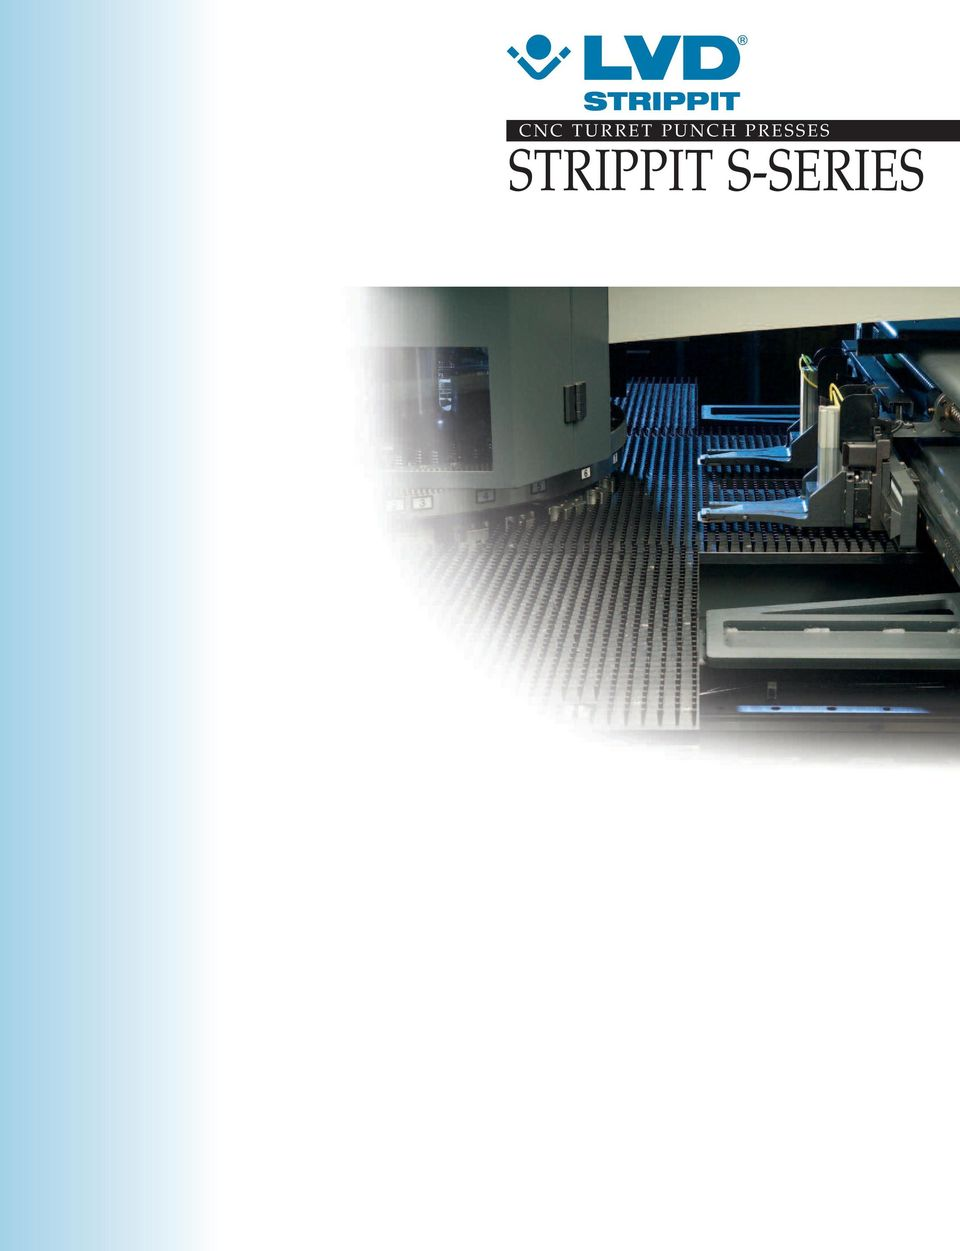 2 STRIPPIT S-SERIES Performance & Economy T he Strippit S-Series of CNC  turret punch presses from LVD Strippit combine high performance with  economy to ...